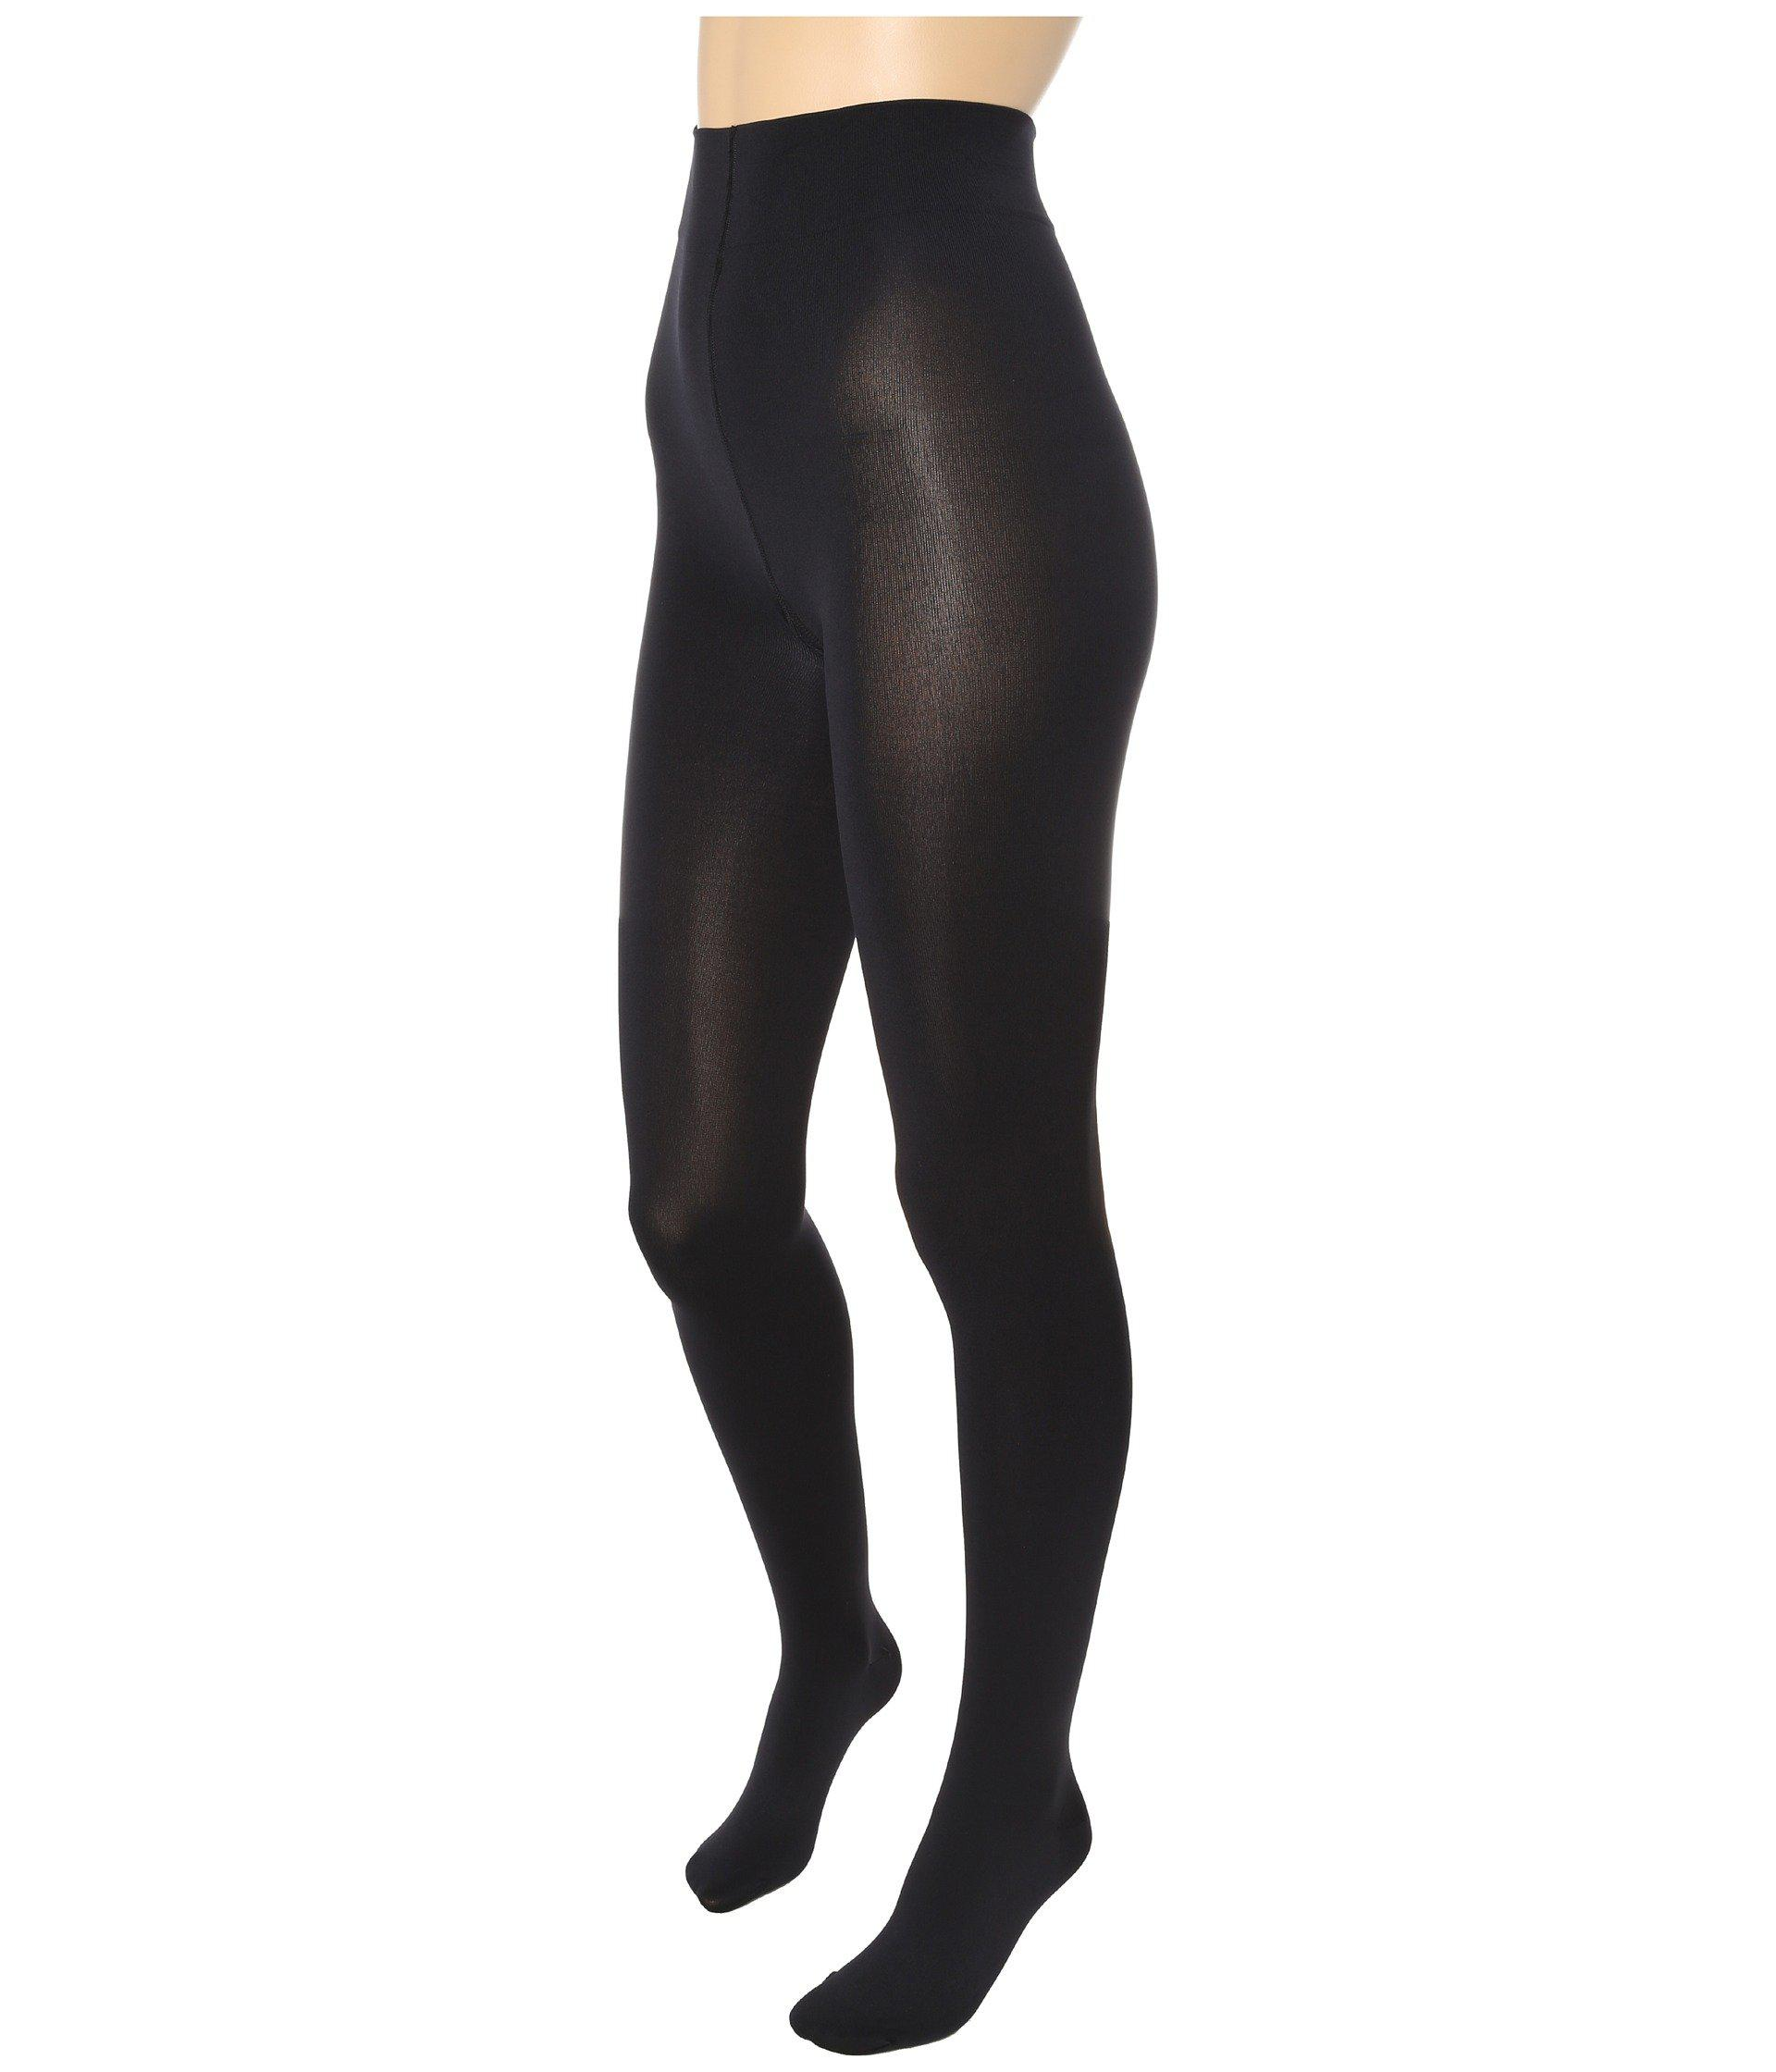 302e91e53 Wolford Individual 100 Leg Support Tights (black) Hose in Black - Lyst